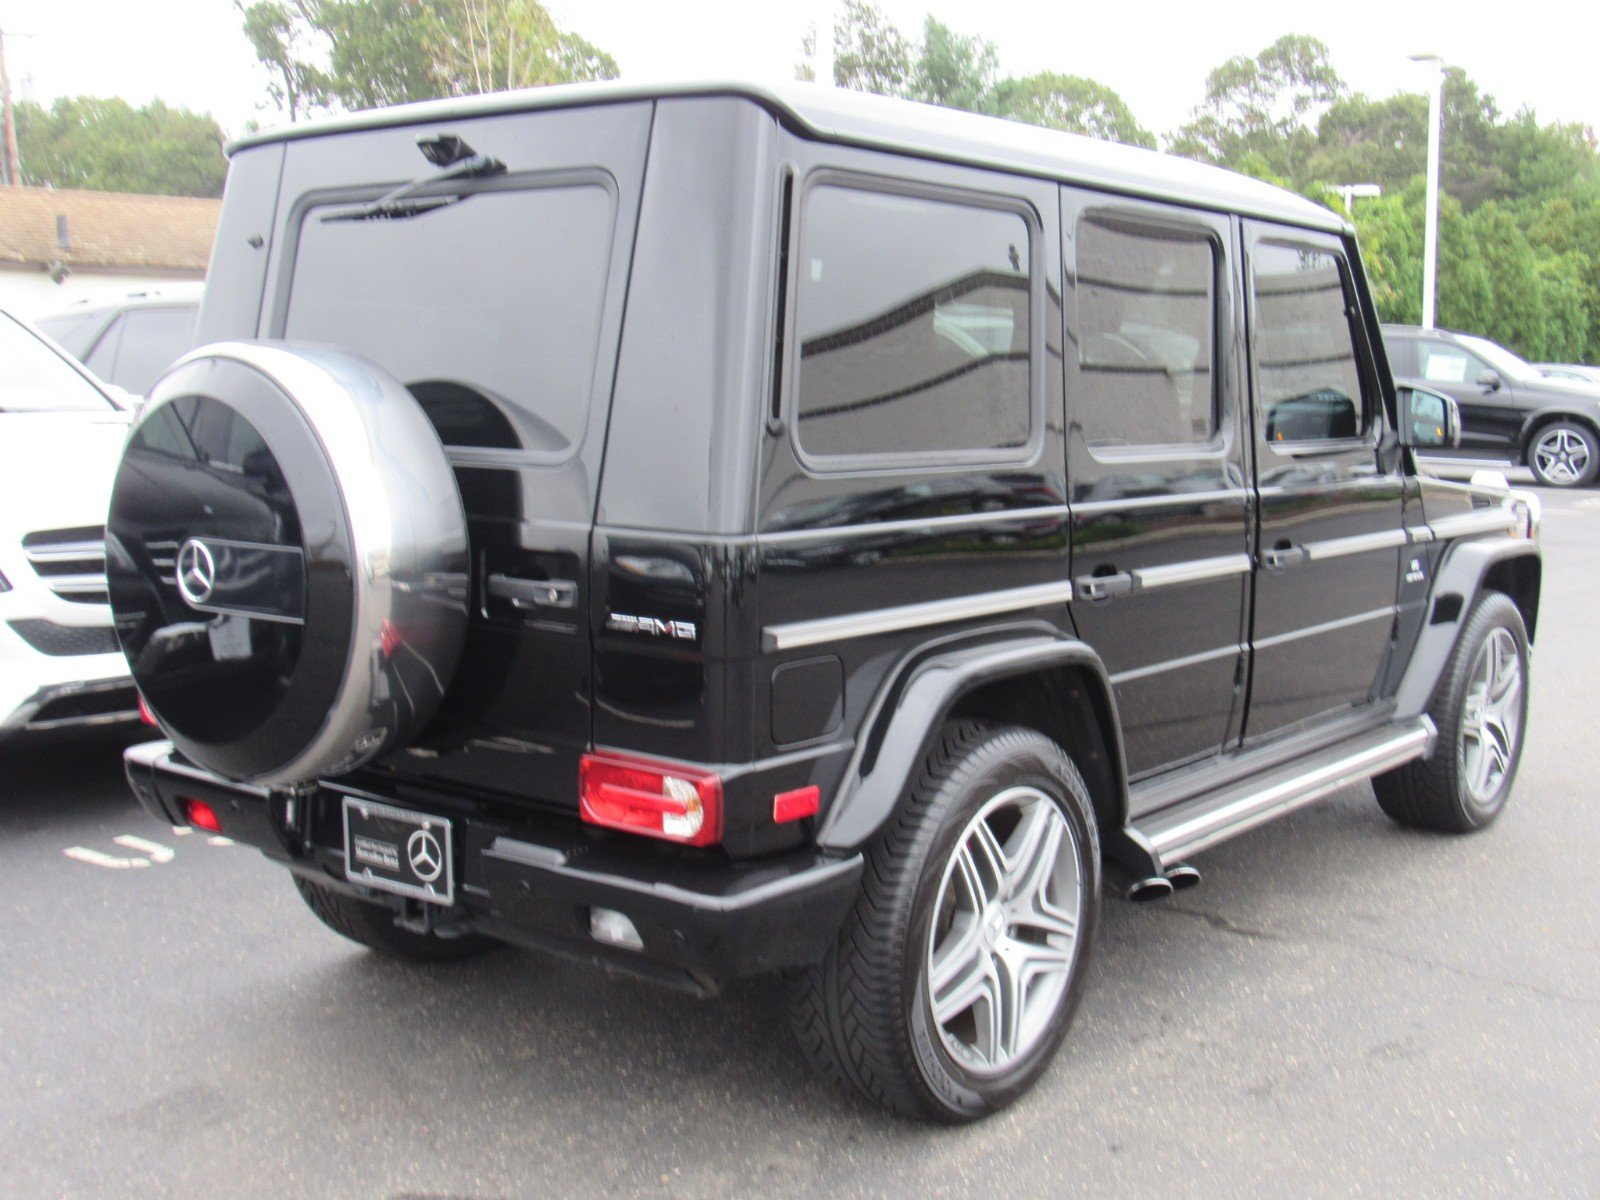 Certified Pre Owned 2015 Mercedes Benz G Class G 63 AMG SUV in